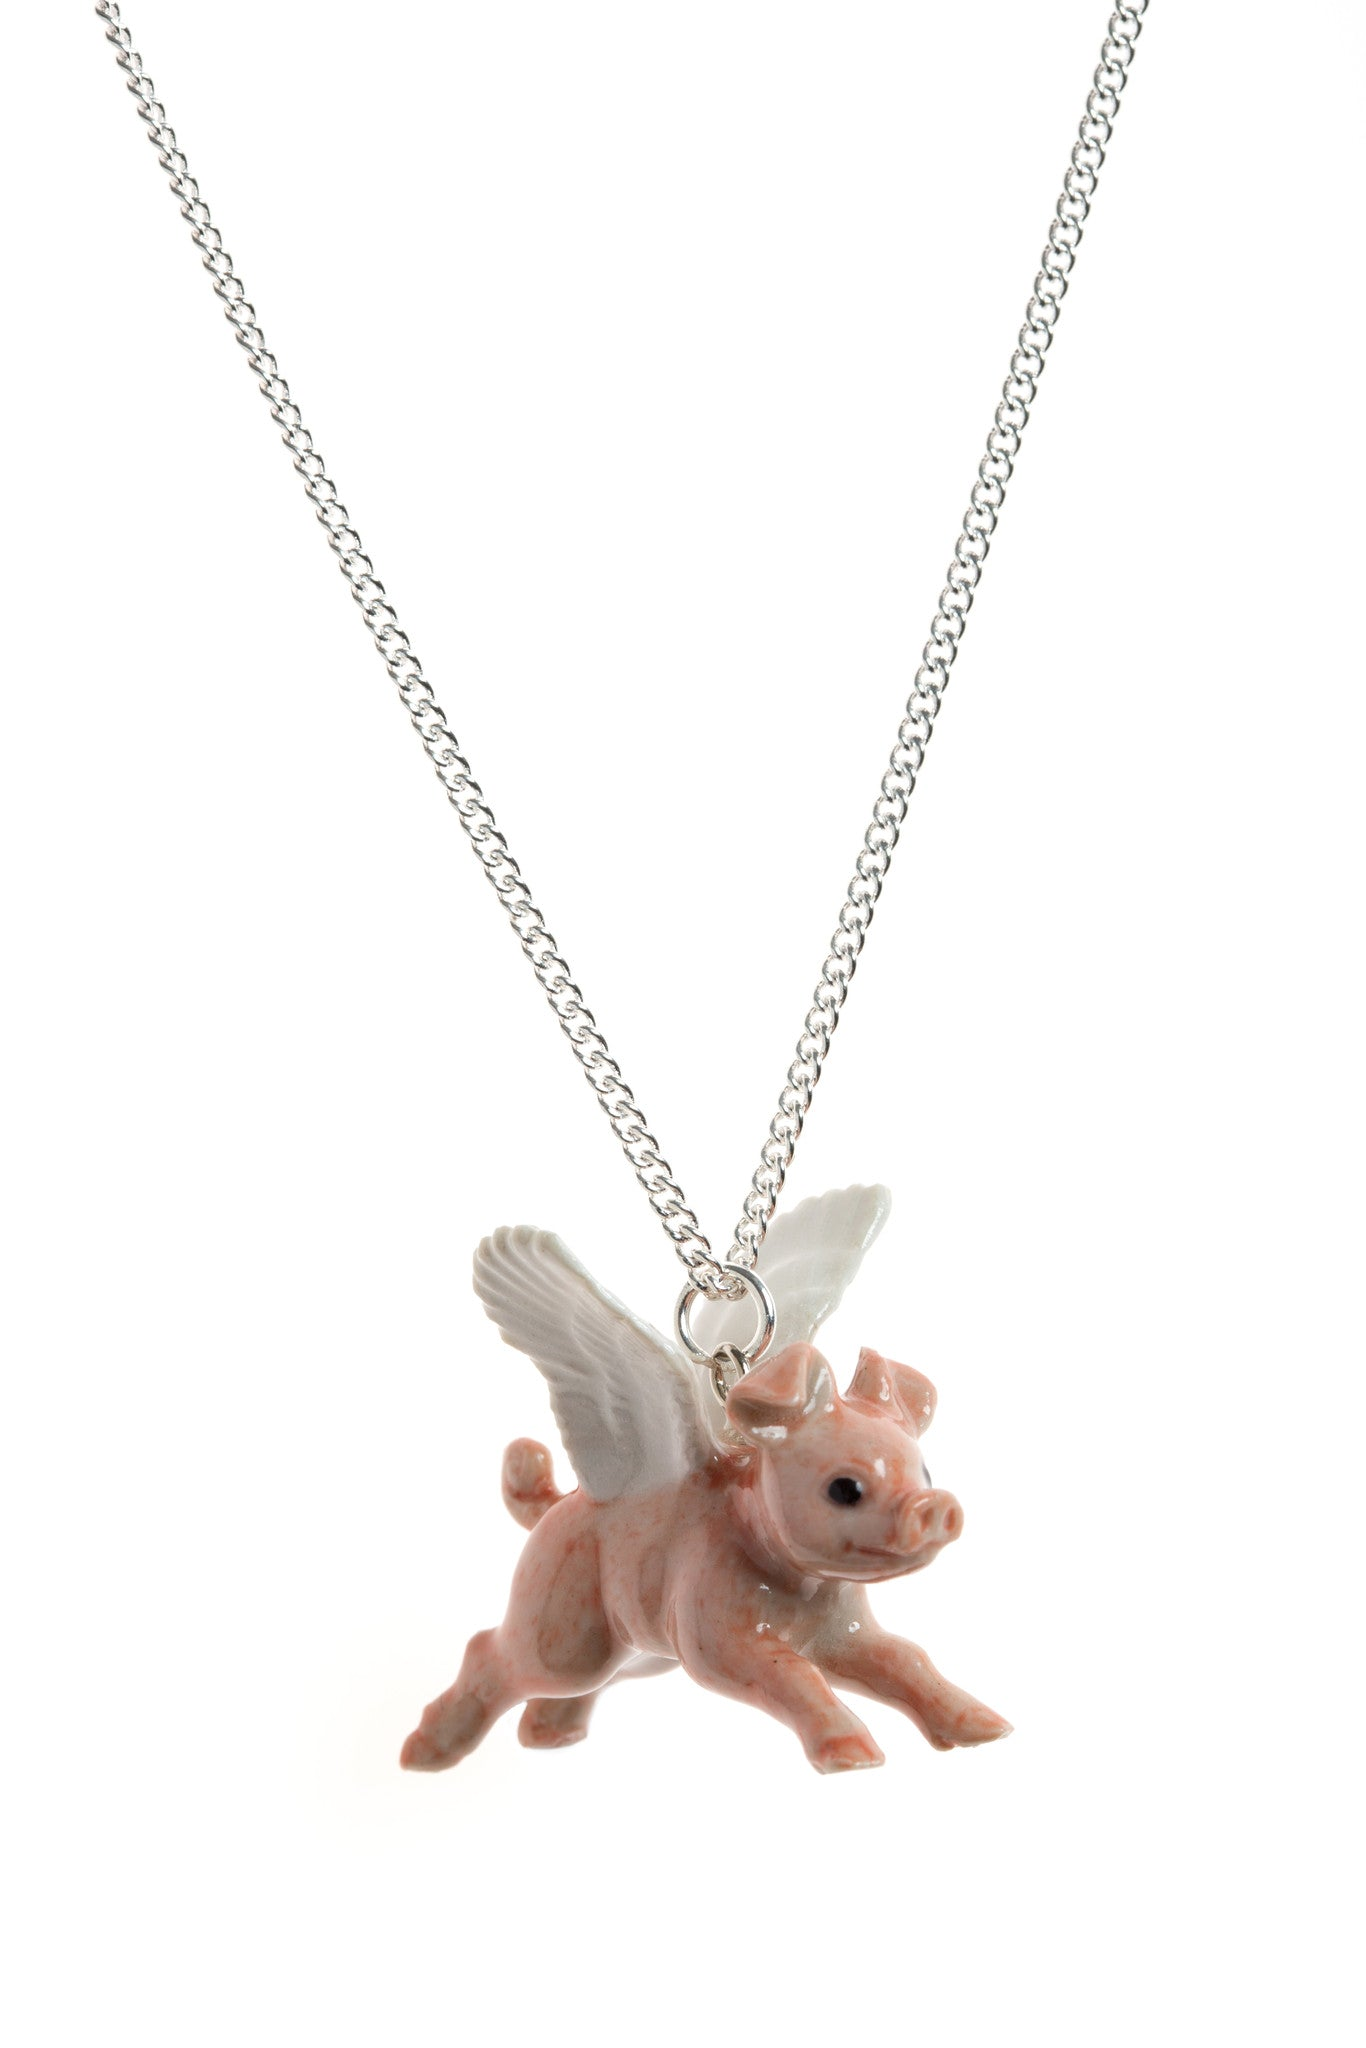 Flying Pig Necklace With White Wings